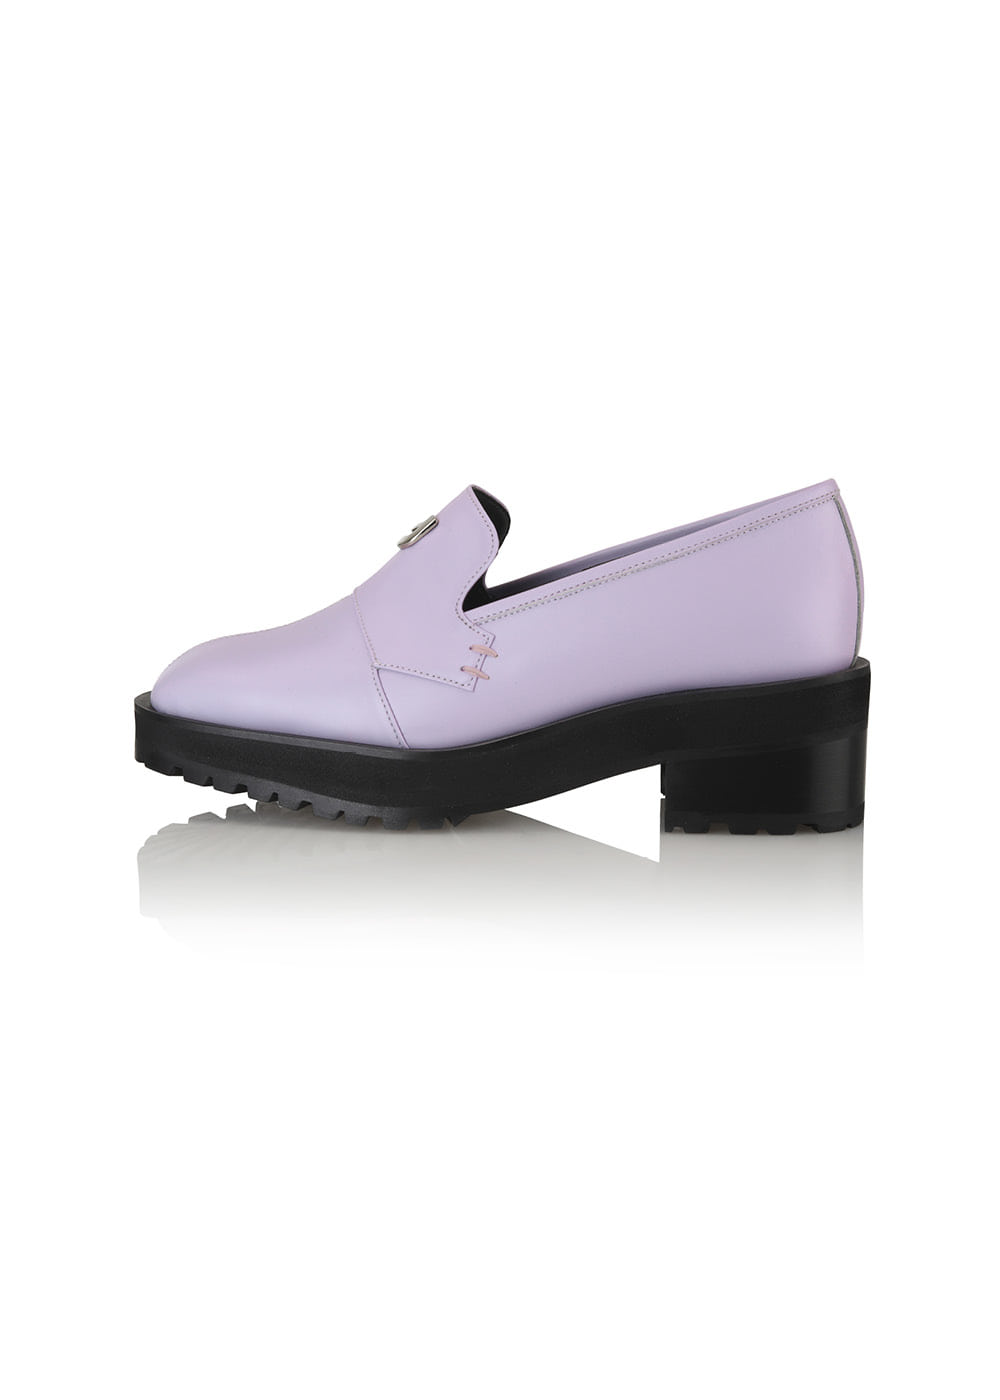 Y.06 Gemini Platform Loafer / Y.06-F13 / 4 colors